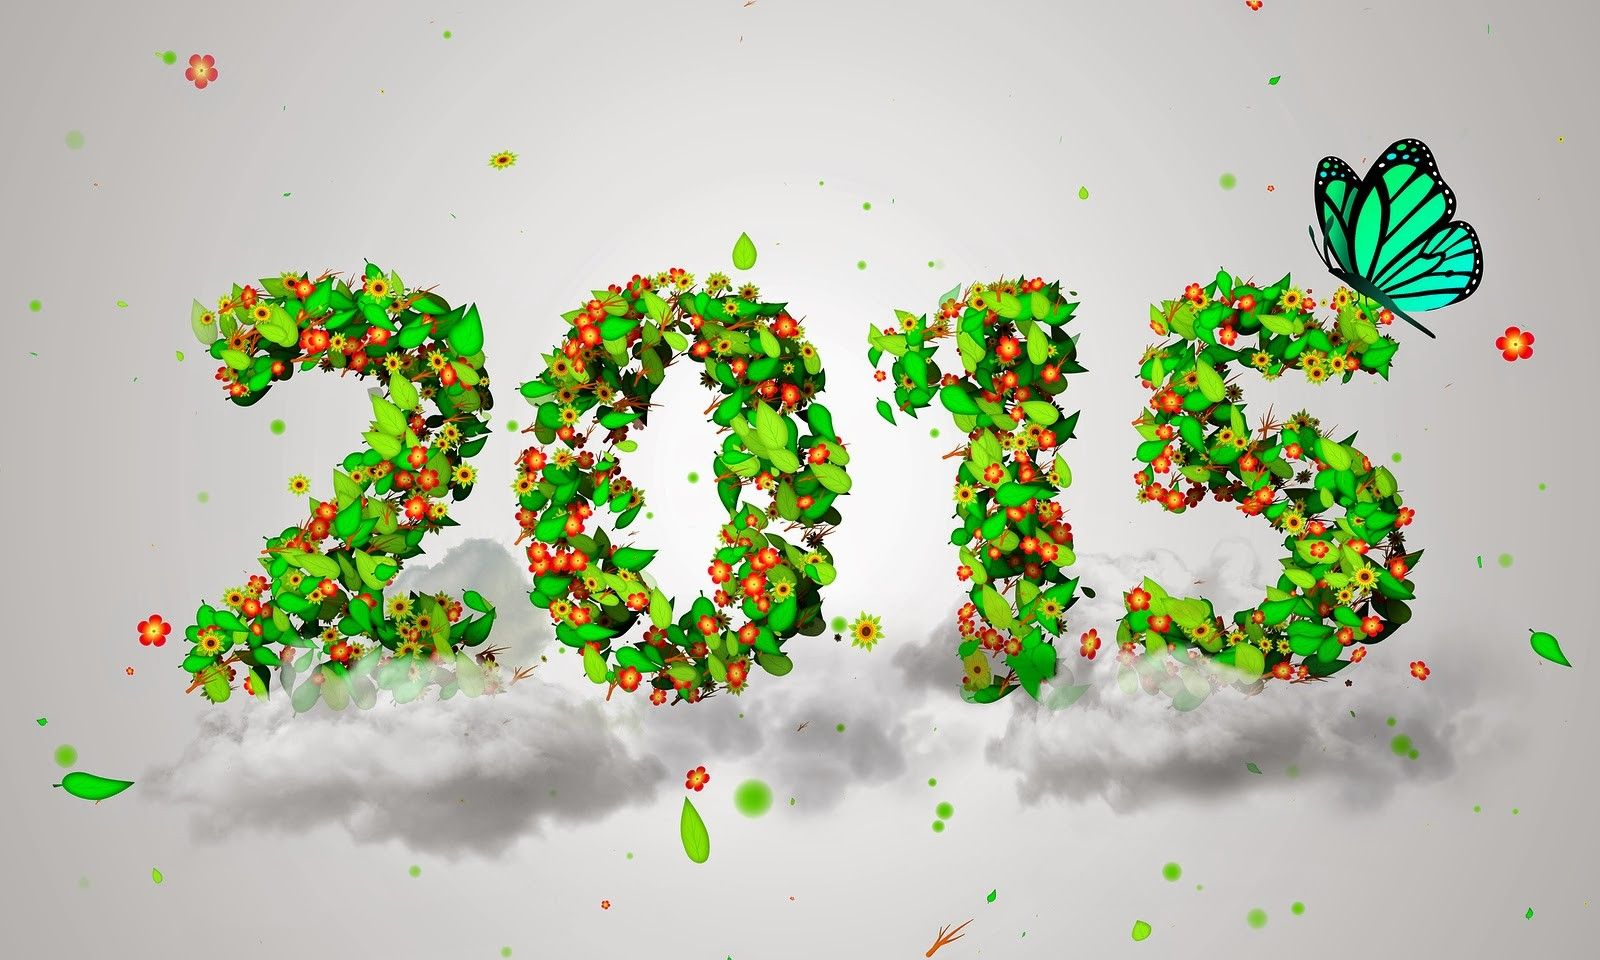 2015 New Year Crafts With The Green Leaves Happy New Year 2015